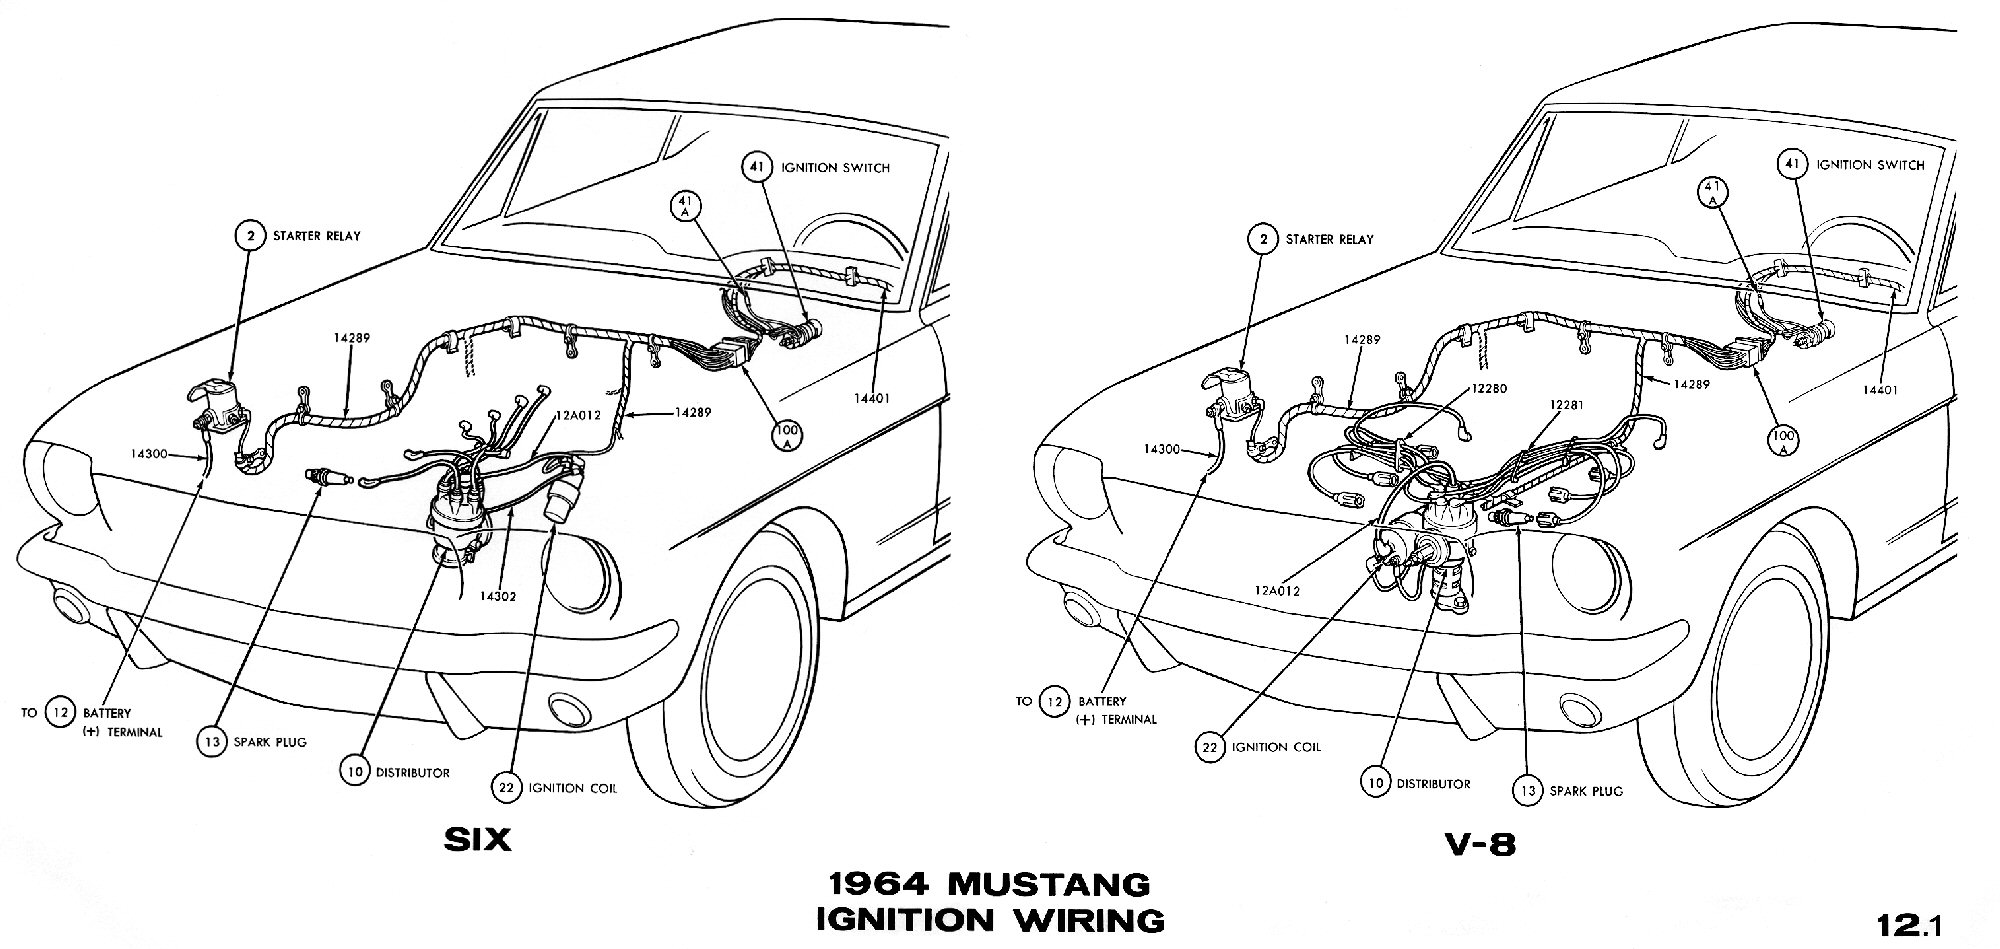 1969 Cougar Ignition Wiring Diagram Diy Enthusiasts Diagrams 67 Harness Schematic El Ritningar Rh Ht67 Com Mustang 69